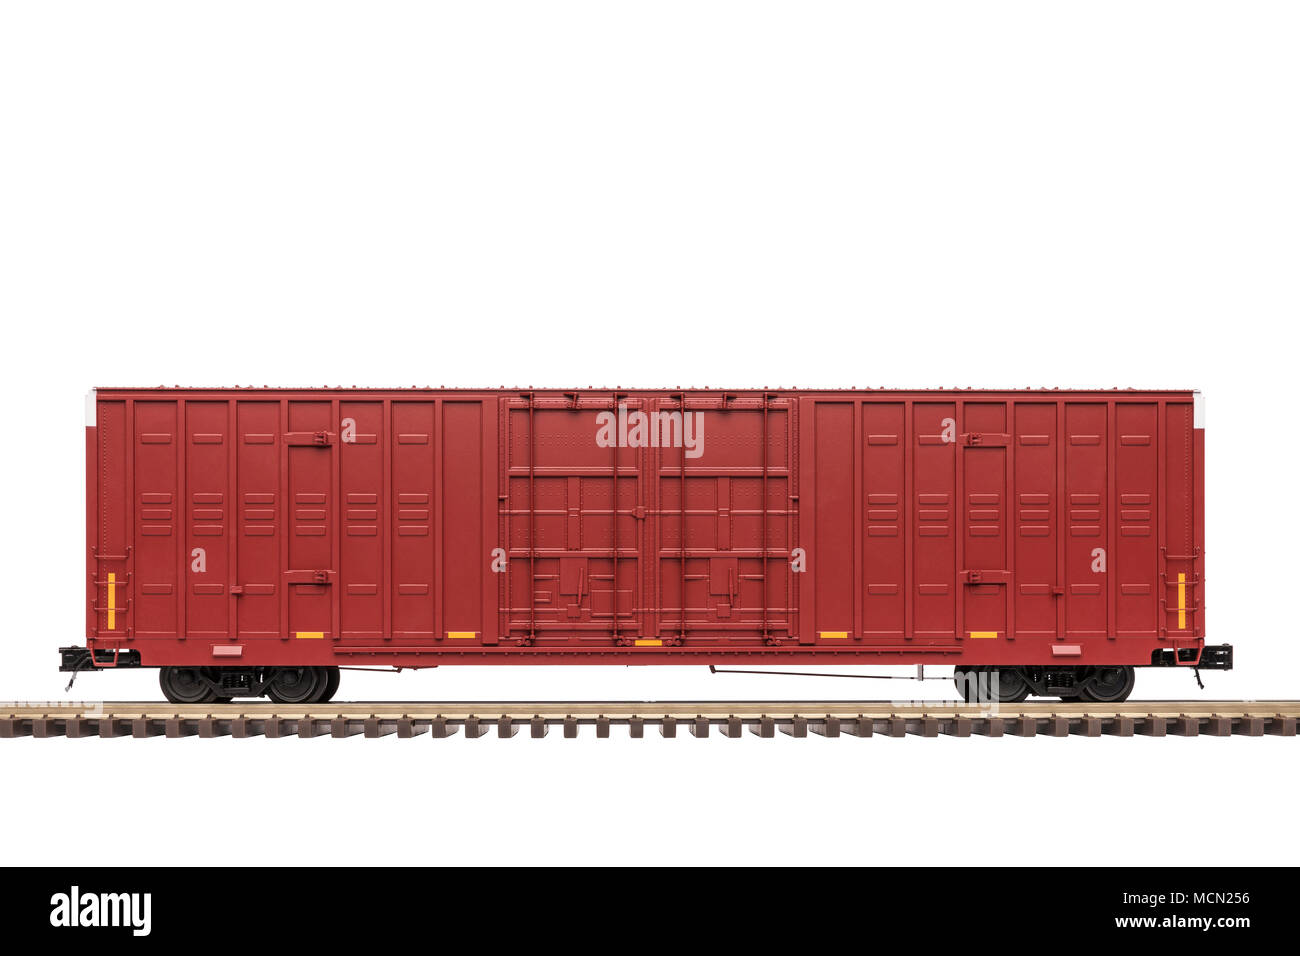 Railroad Box Car On Track - Stock Image